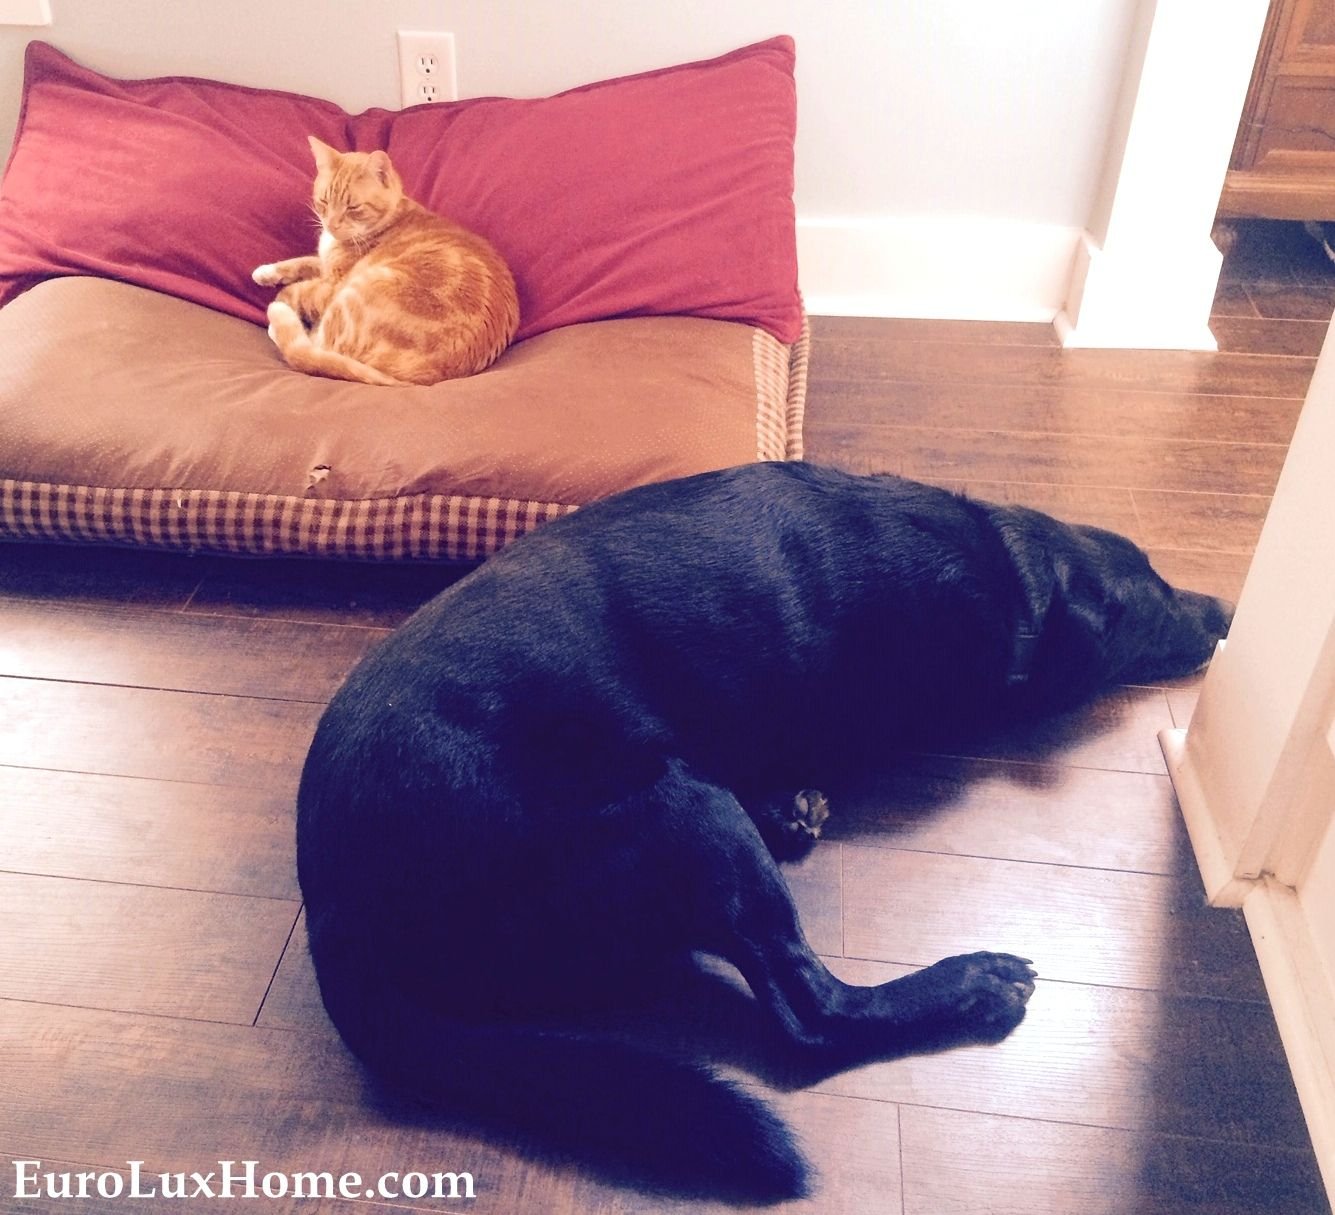 Cats Rule Dogs Drool Furryfriday Cats Dogs Pets Love